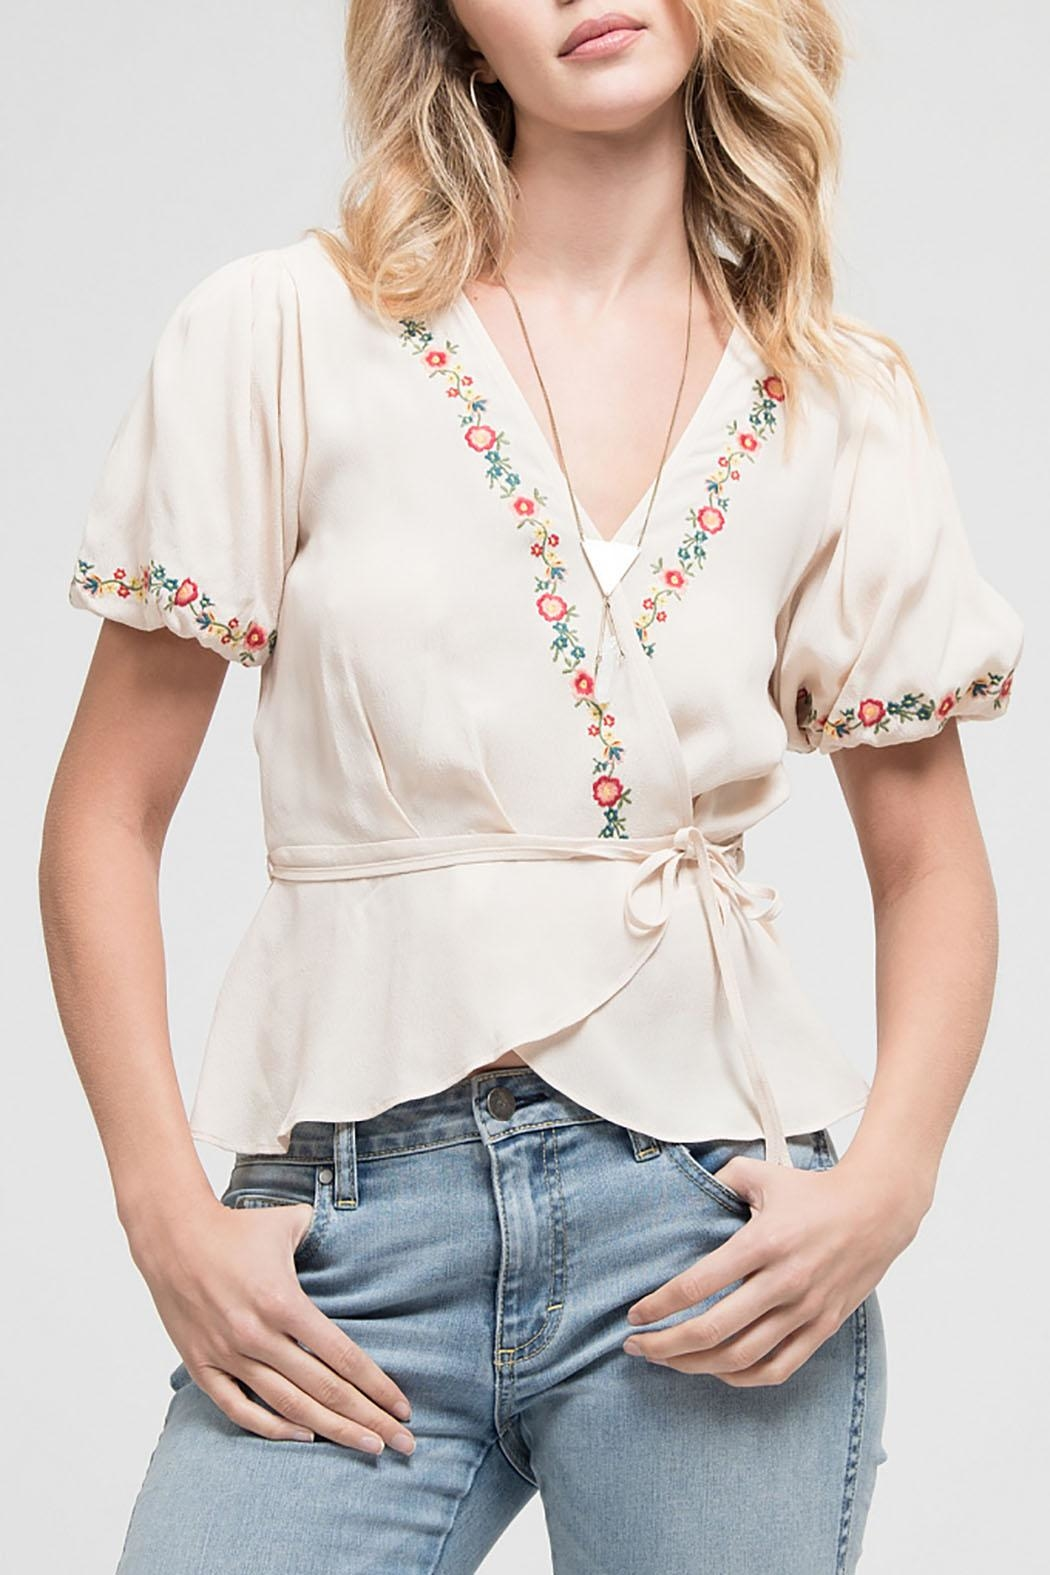 Blu Pepper Embroidered Woven Top - Main Image